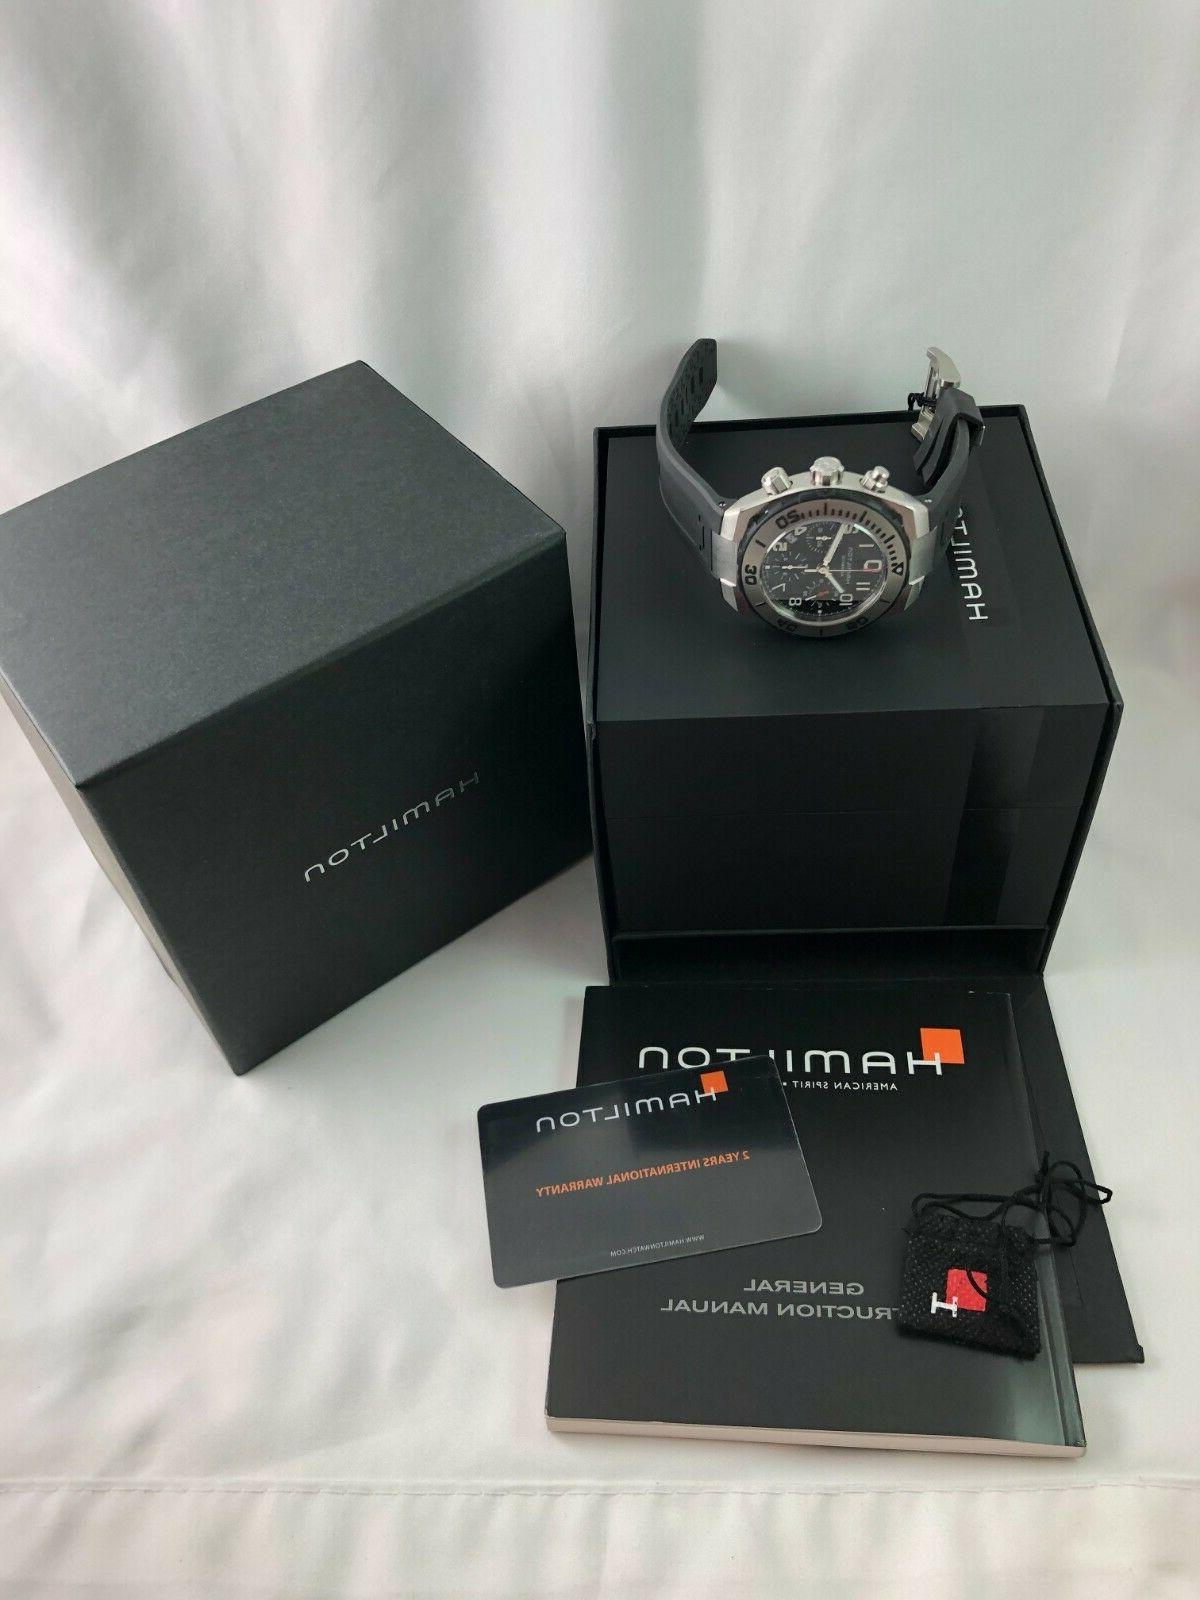 New Hamilton Sub Chrono H78716333 Dive Watch w/ +